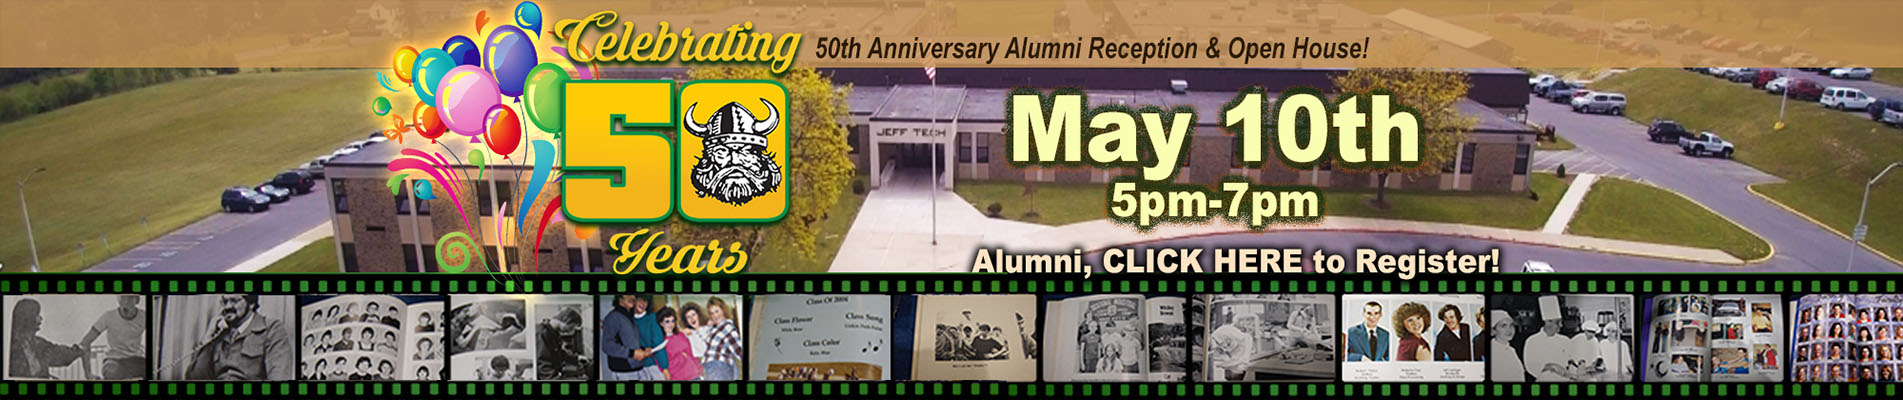 Celebrating 50 Years, 50th Anniversary Alumni & Open House - May 10, 5:00 p.m.-7:00 p.m. - Alumni, CLICK HERE to Register